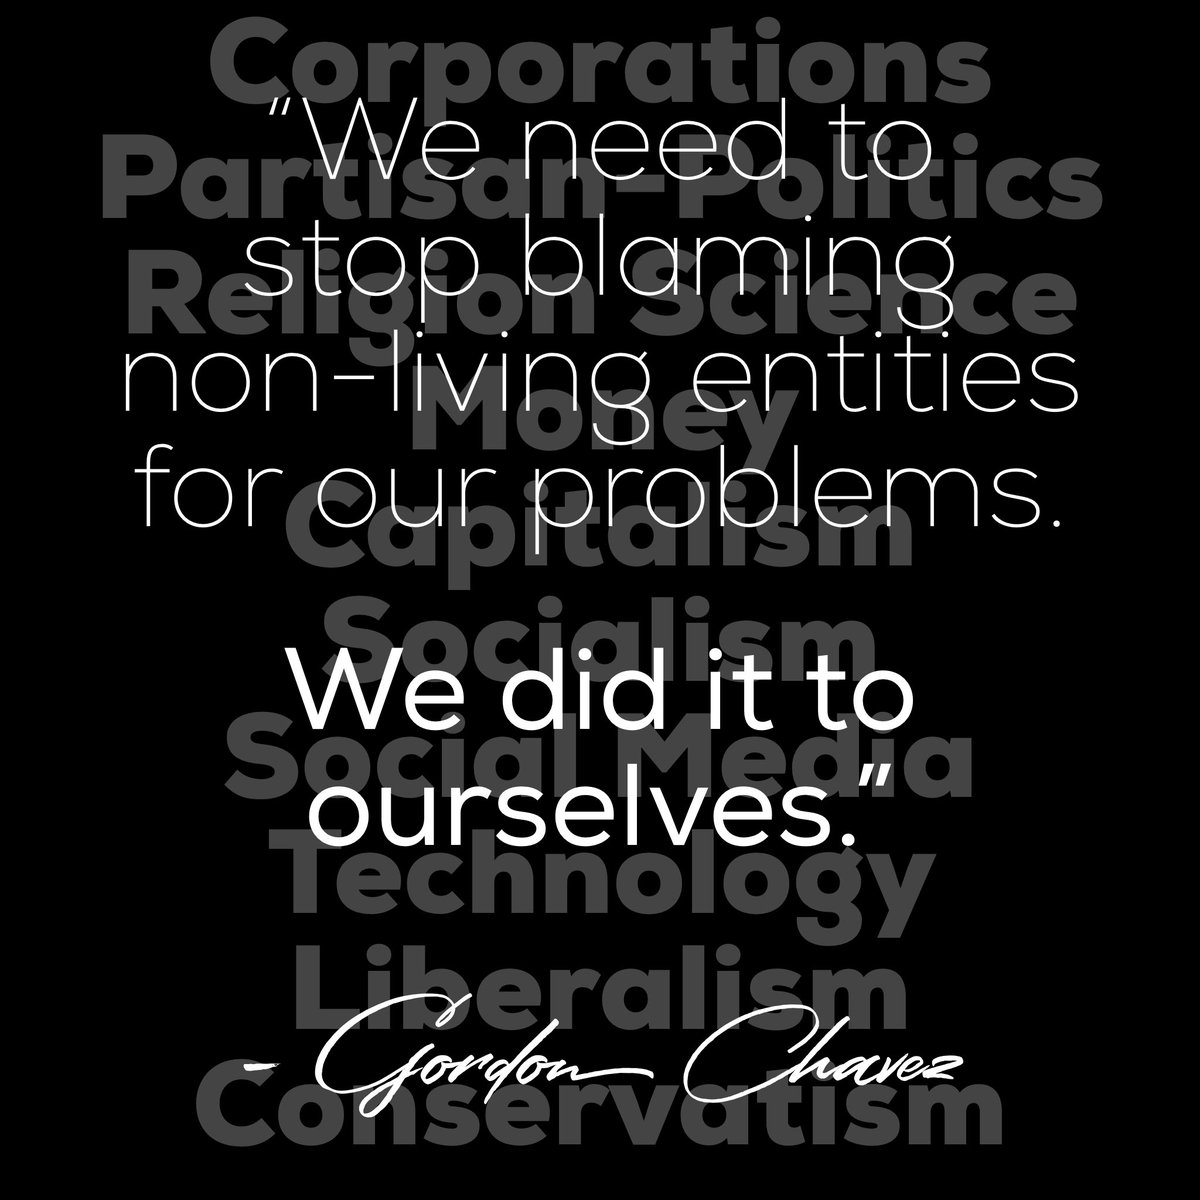 """We need to stop blaming non-living entities for our problems. We did it to ourselves.""  - #GordonChavez   #Unity #MankindIsOne #WeAreOne #StopBlaming #OwnUp #WeDidItToOurselves #IDidItToMyself #Perspective #WeAreOurOwnWorstEnemy #IAmMyOwnWorstEnemy #Change #WeNeedToChange https://t.co/fwVg3Twf3a"